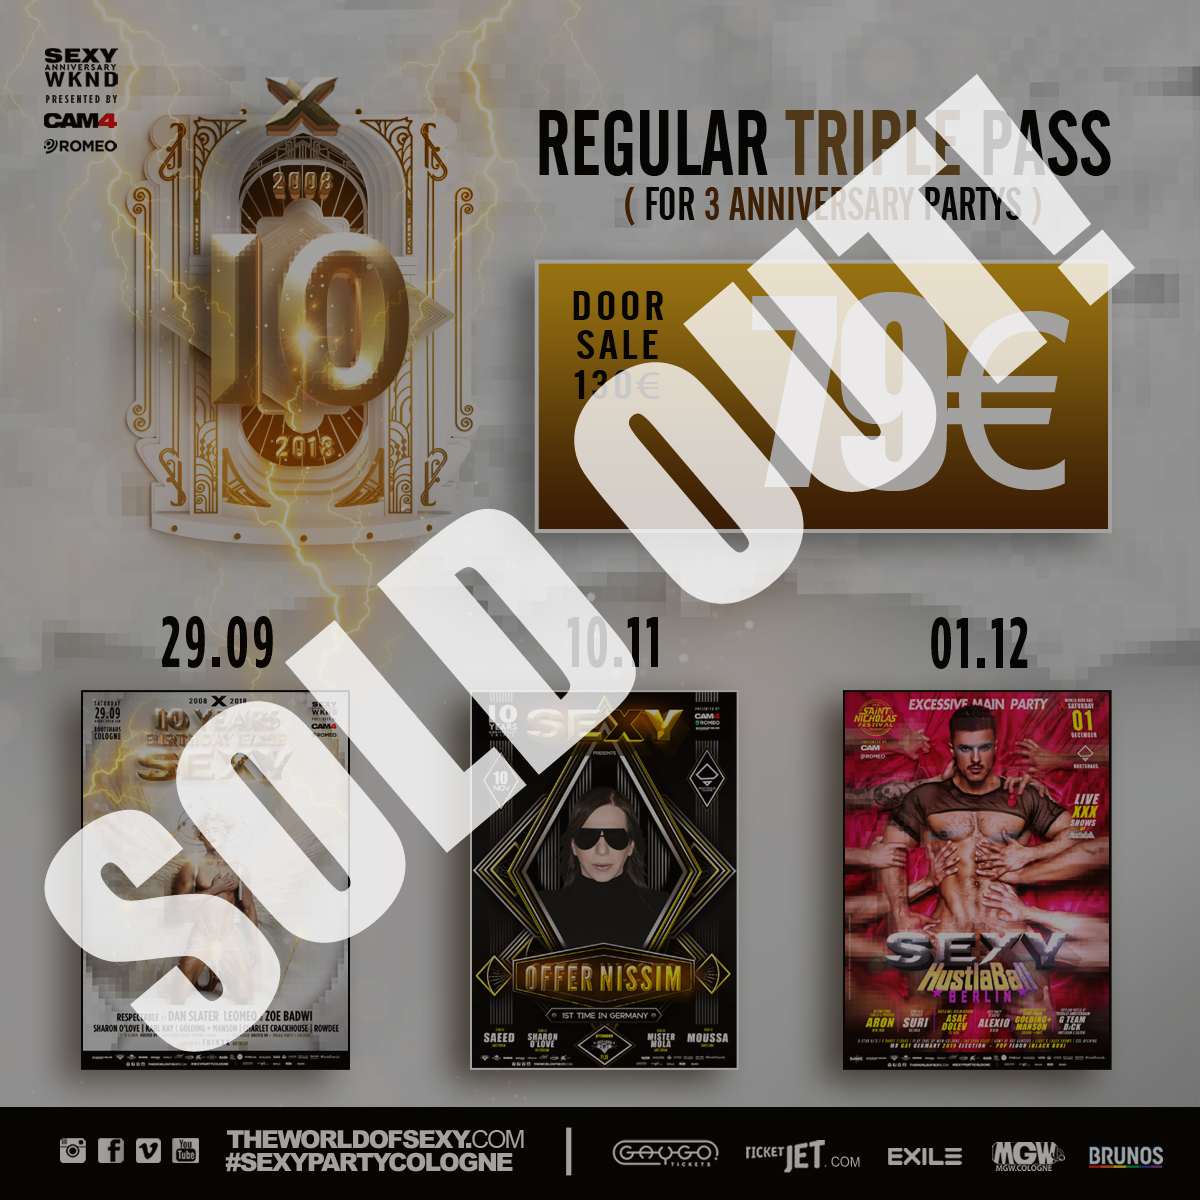 , +++ ANNIVERSARY TRIPLE TICKET IS SOLD OUT! +++